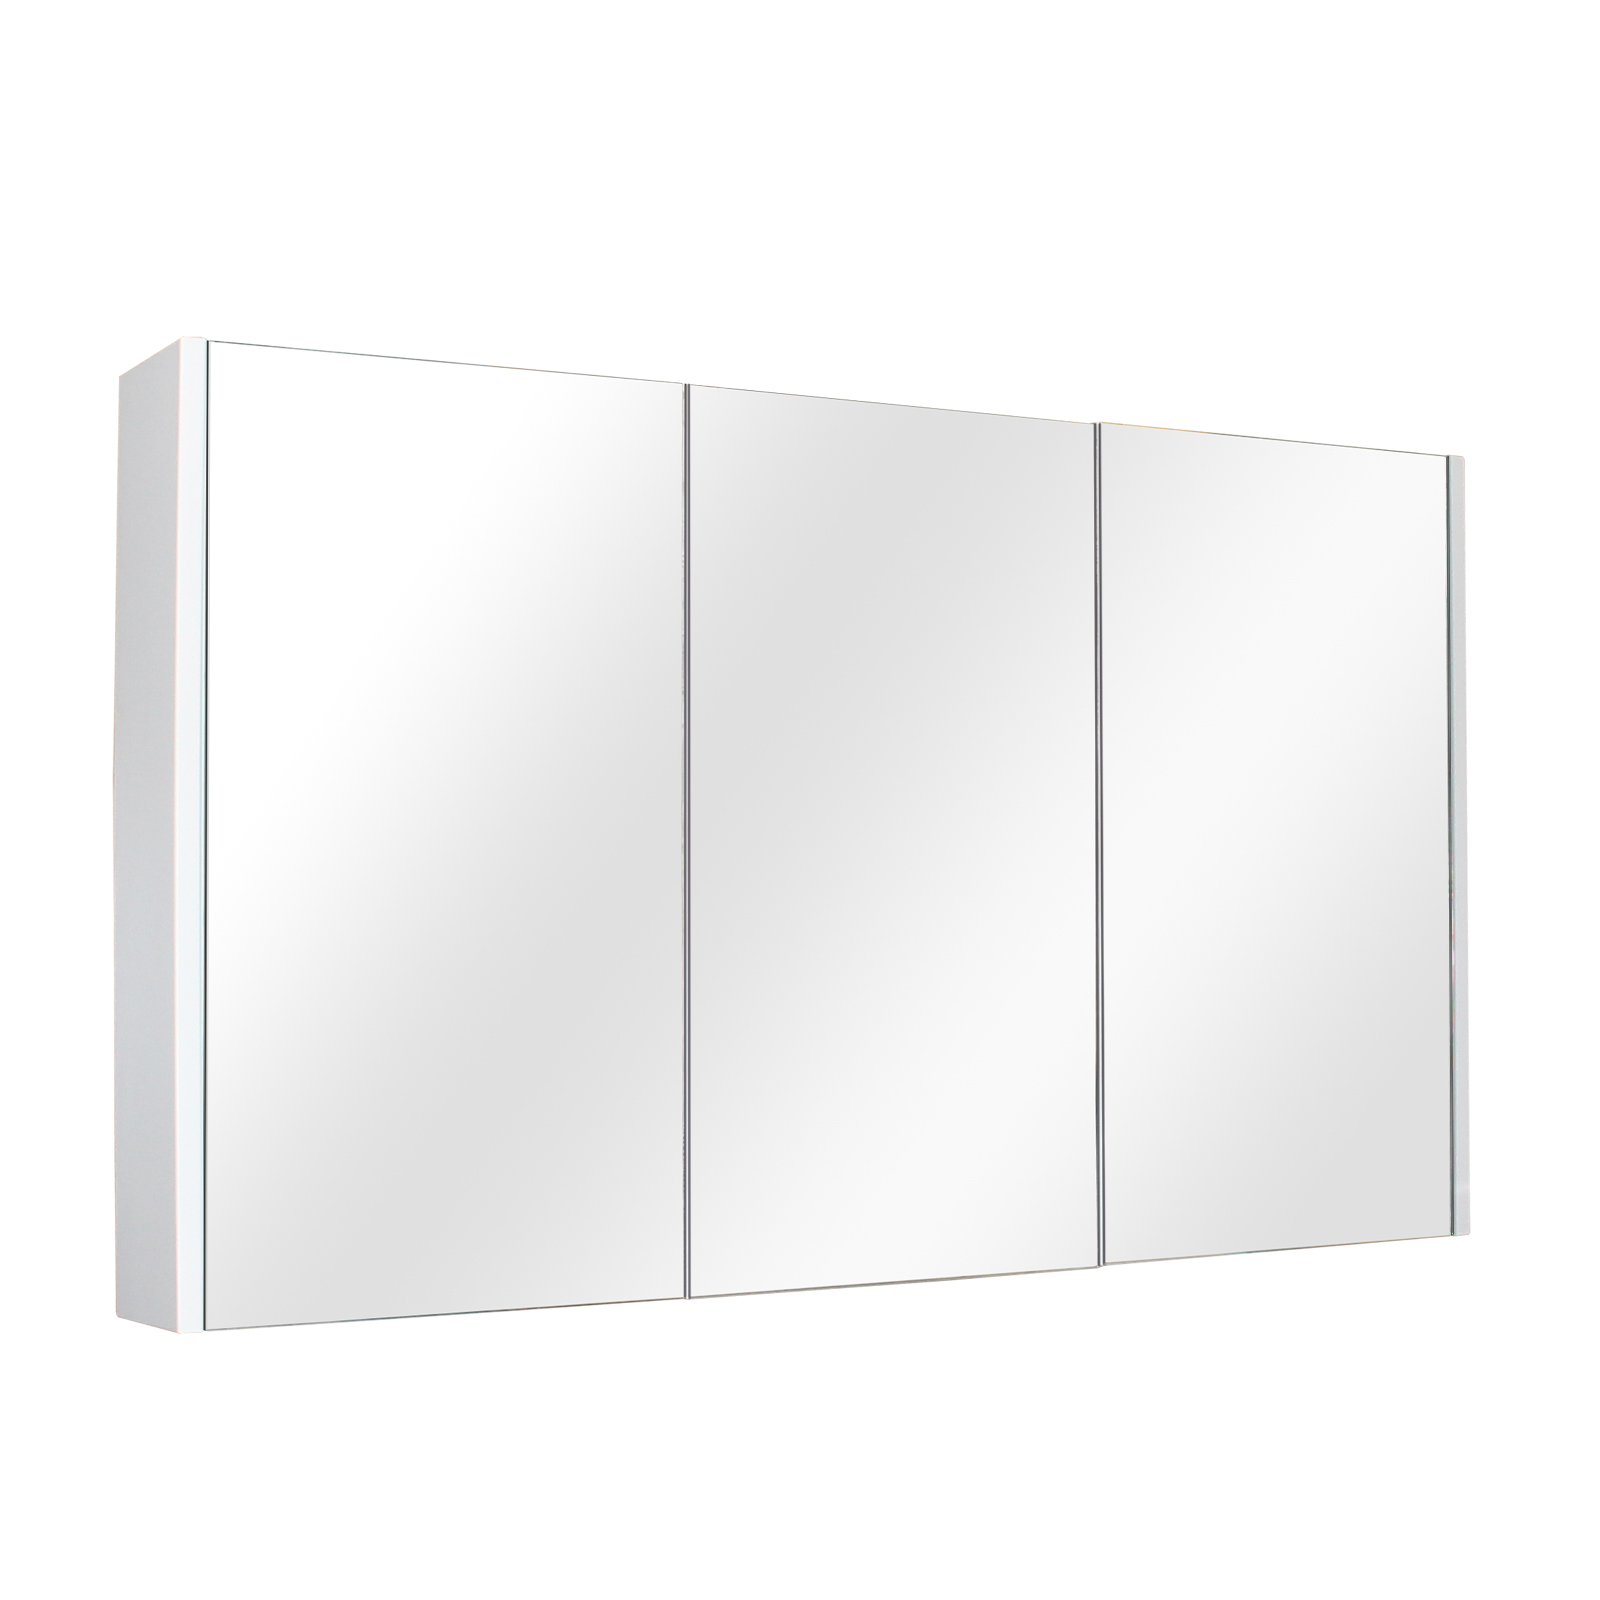 Paris 1200 Shaving Cabinet - Matte White